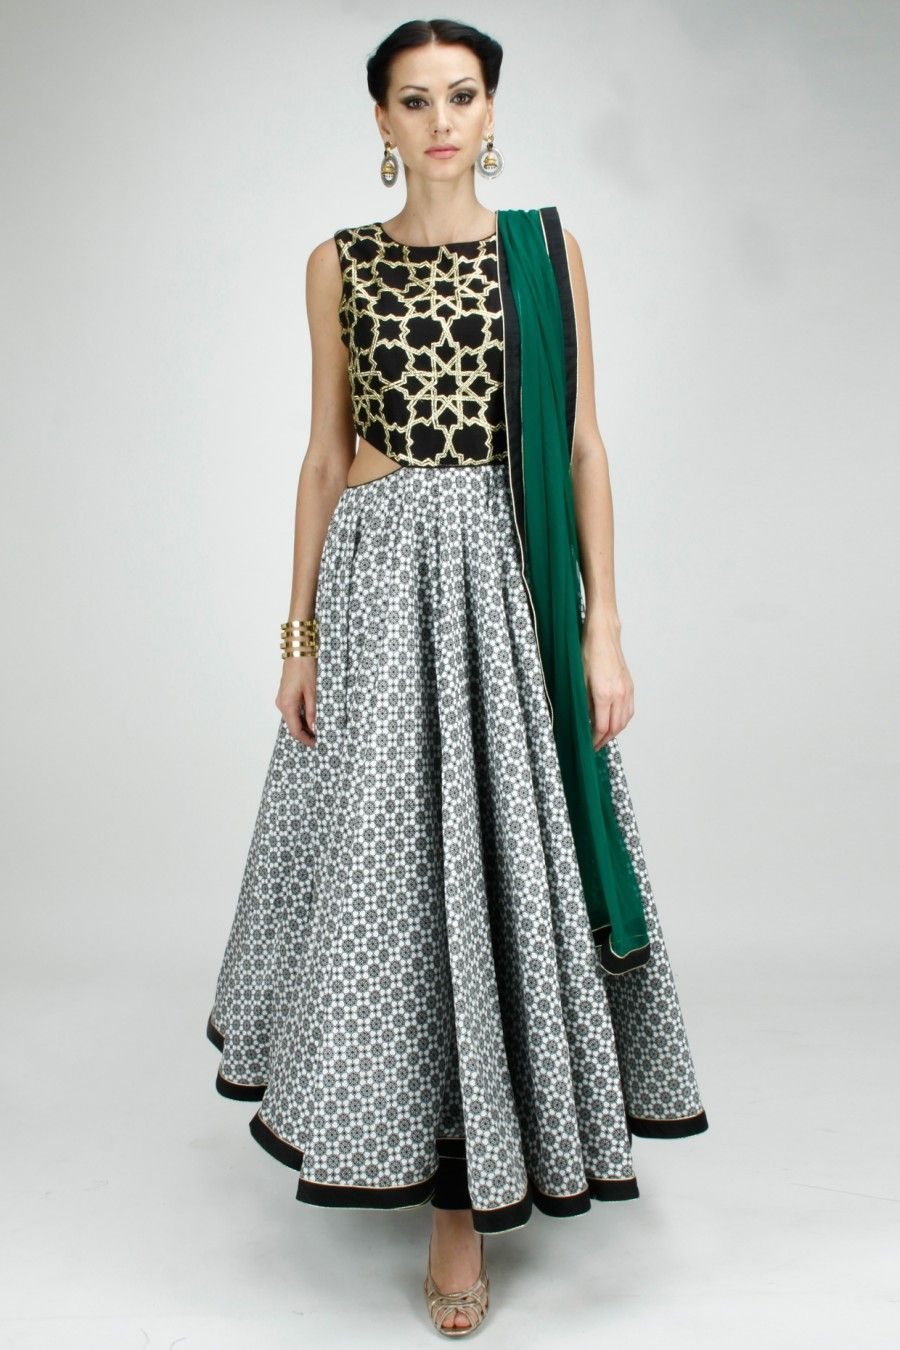 Pin by puja pawar on playing dress up pinterest designer jewelry